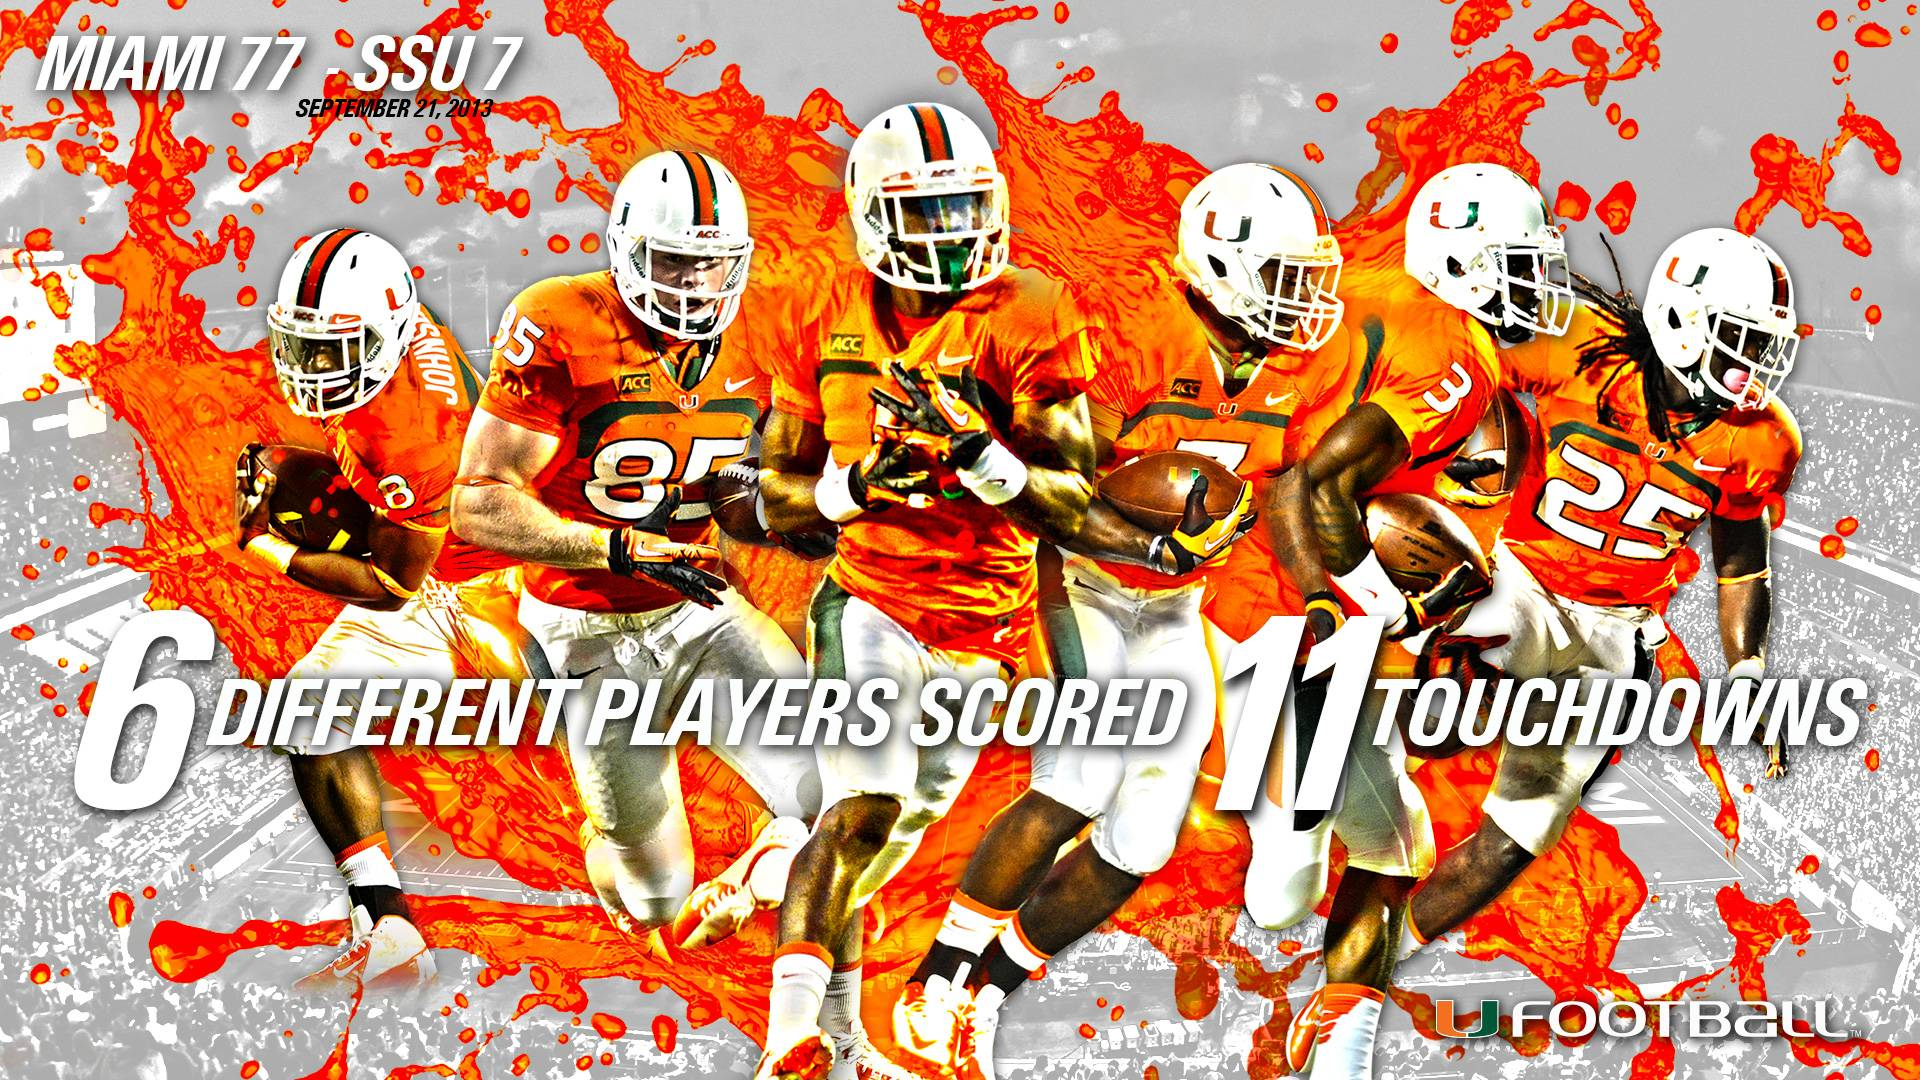 State University 2015 Football Schedule Wallpapers 1920x1080